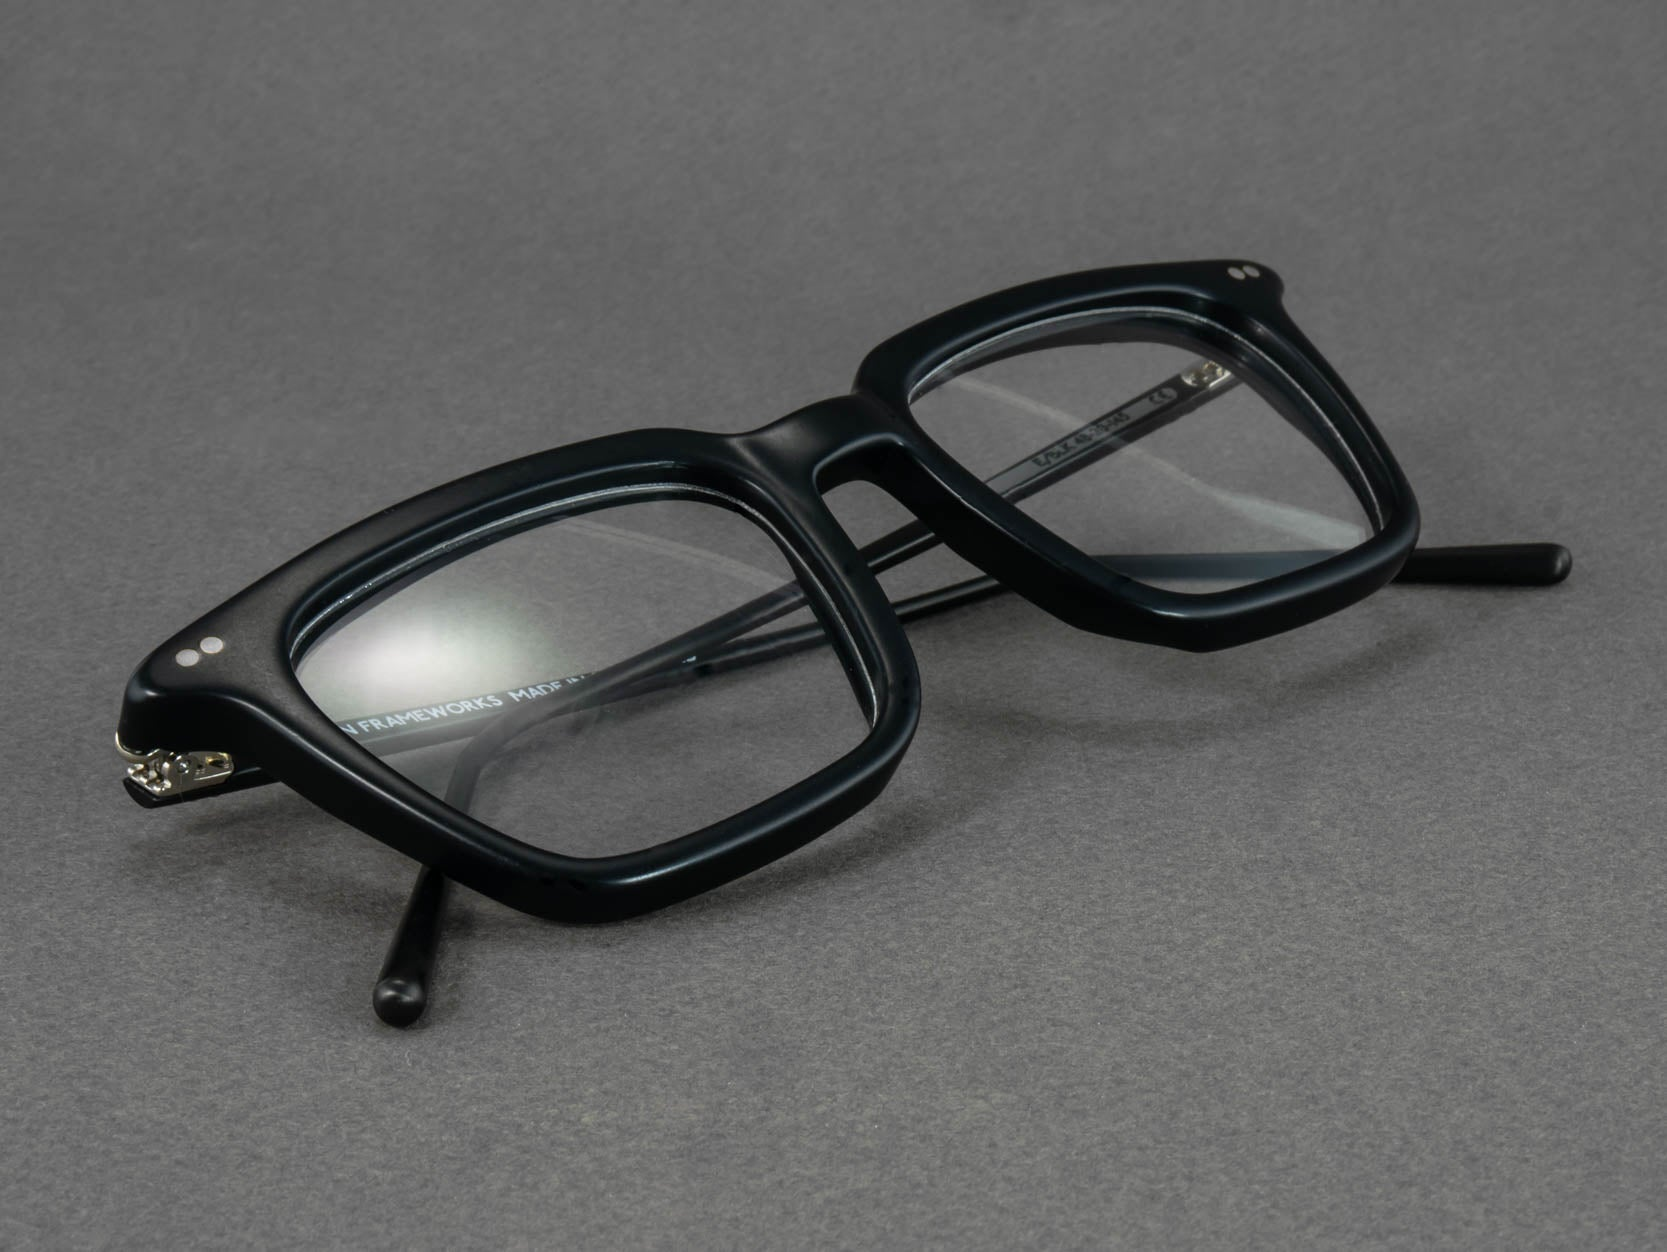 black rectangular optical glasses close up